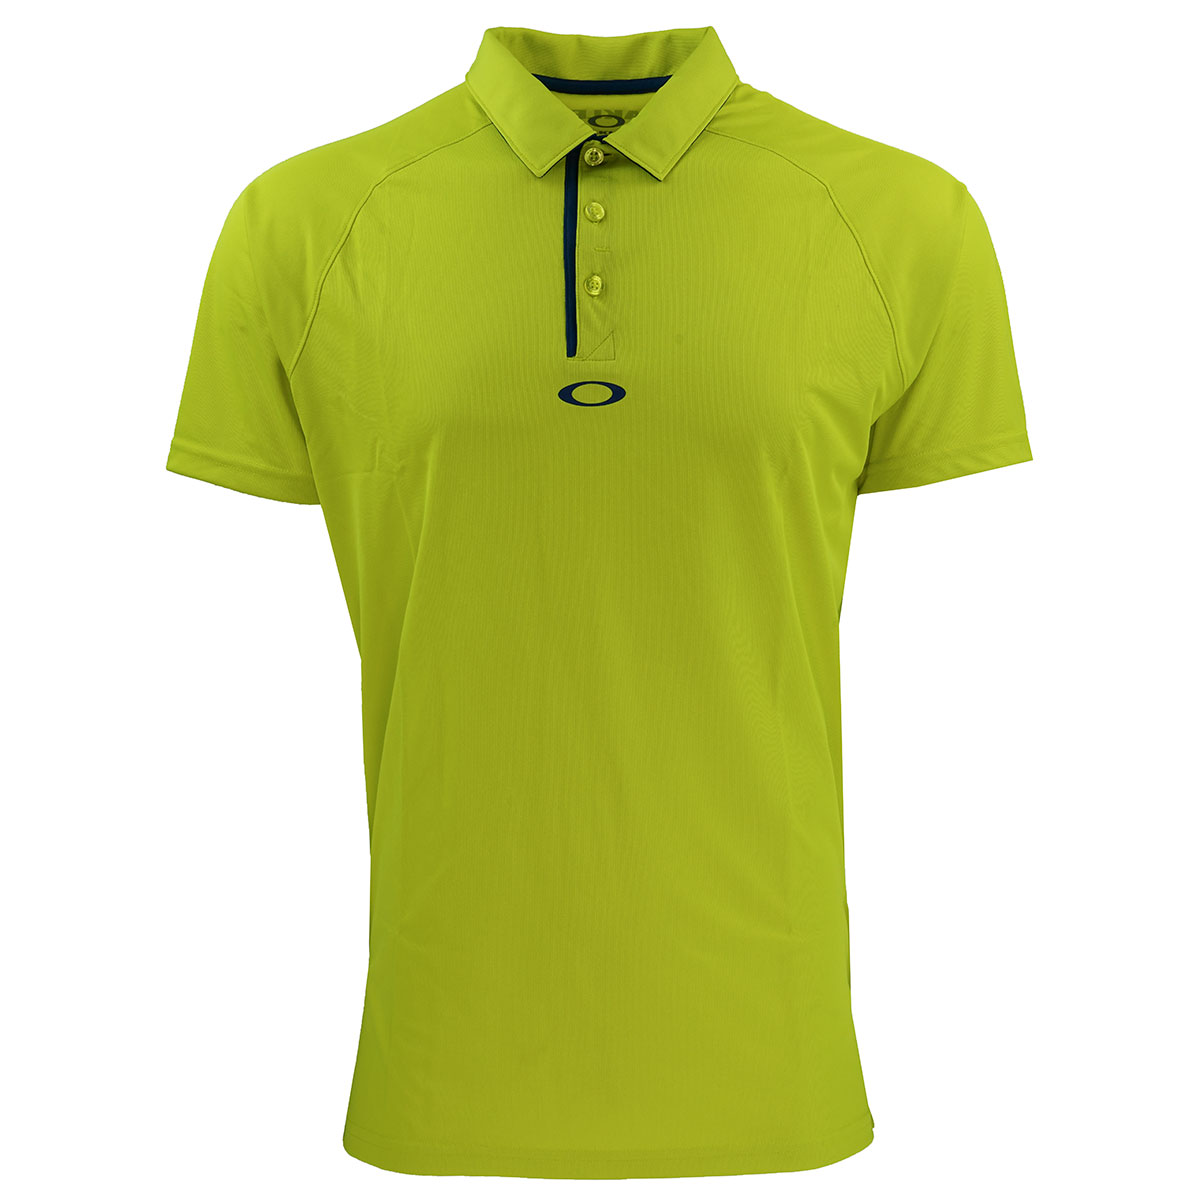 90e2077b4e Details about Oakley Men s Elemental 2.0 Sport Polo